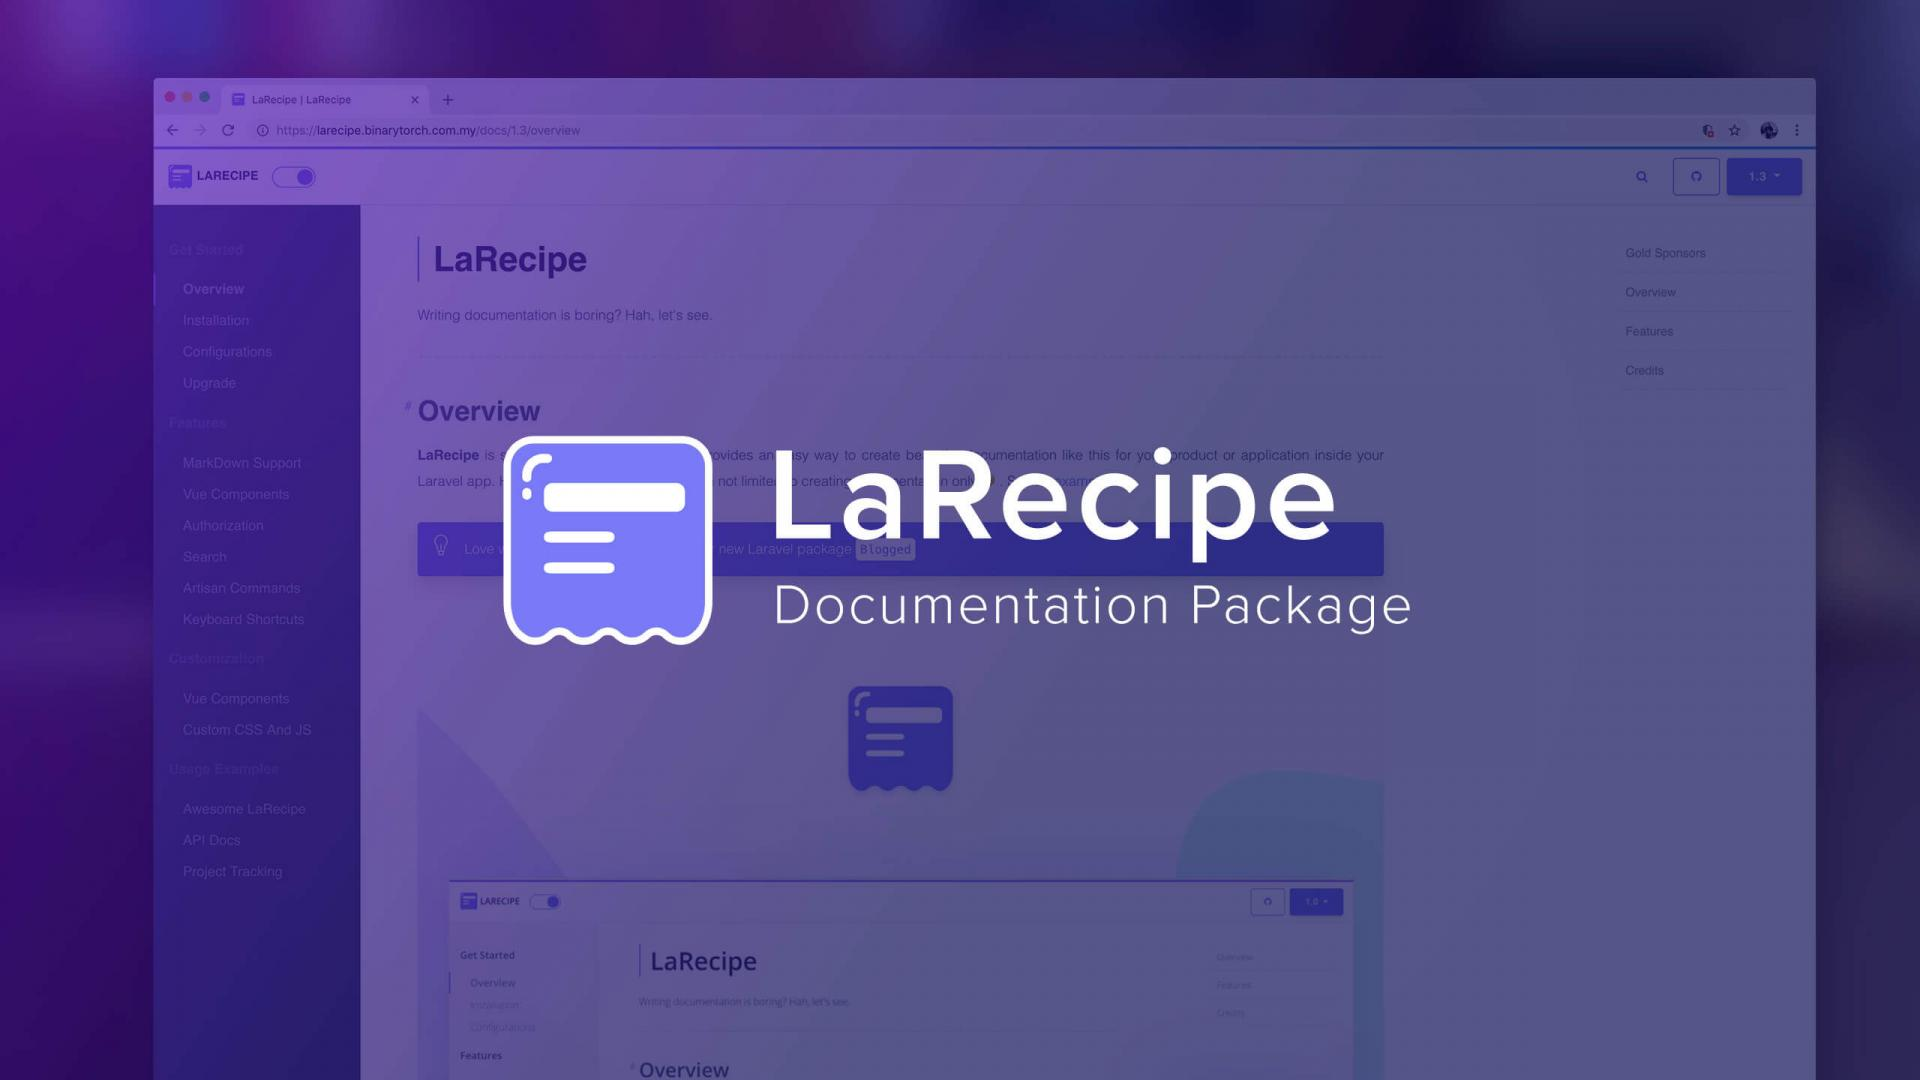 Larecipe Documentation Package